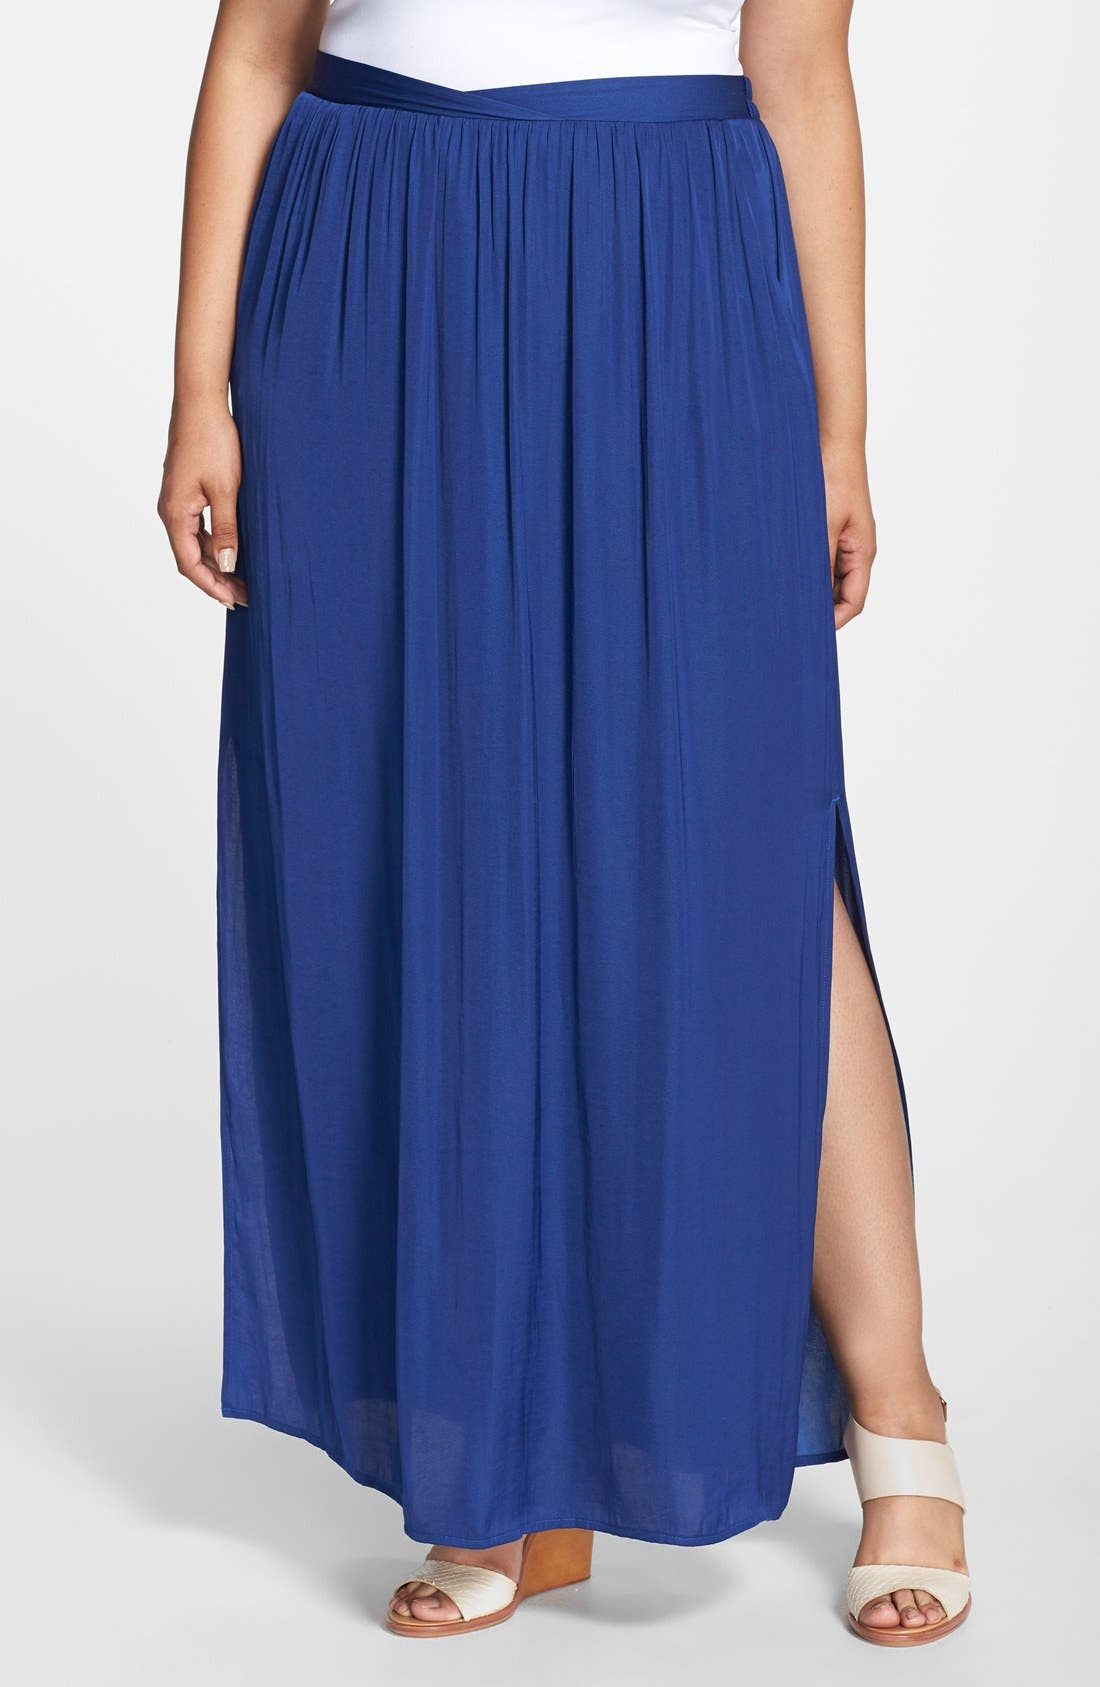 'Tarot' Side Slit Maxi Skirt, Main, color, 419